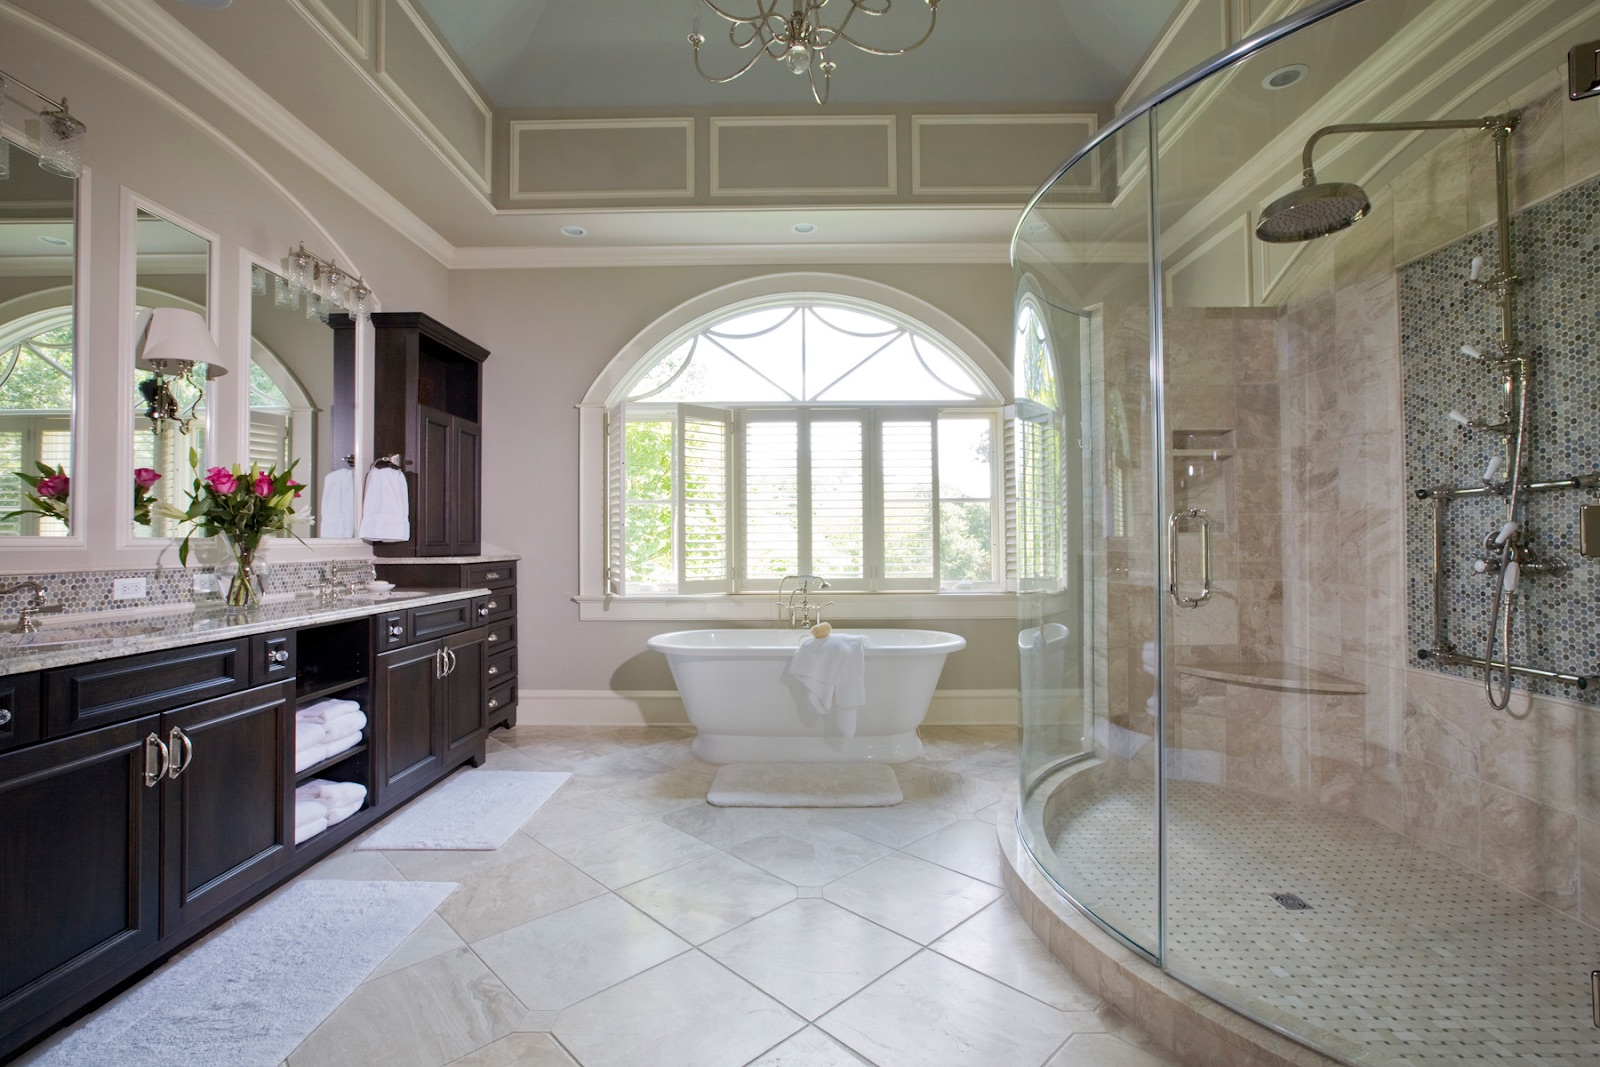 Large bathroom with stand-alone bathtub in the center.